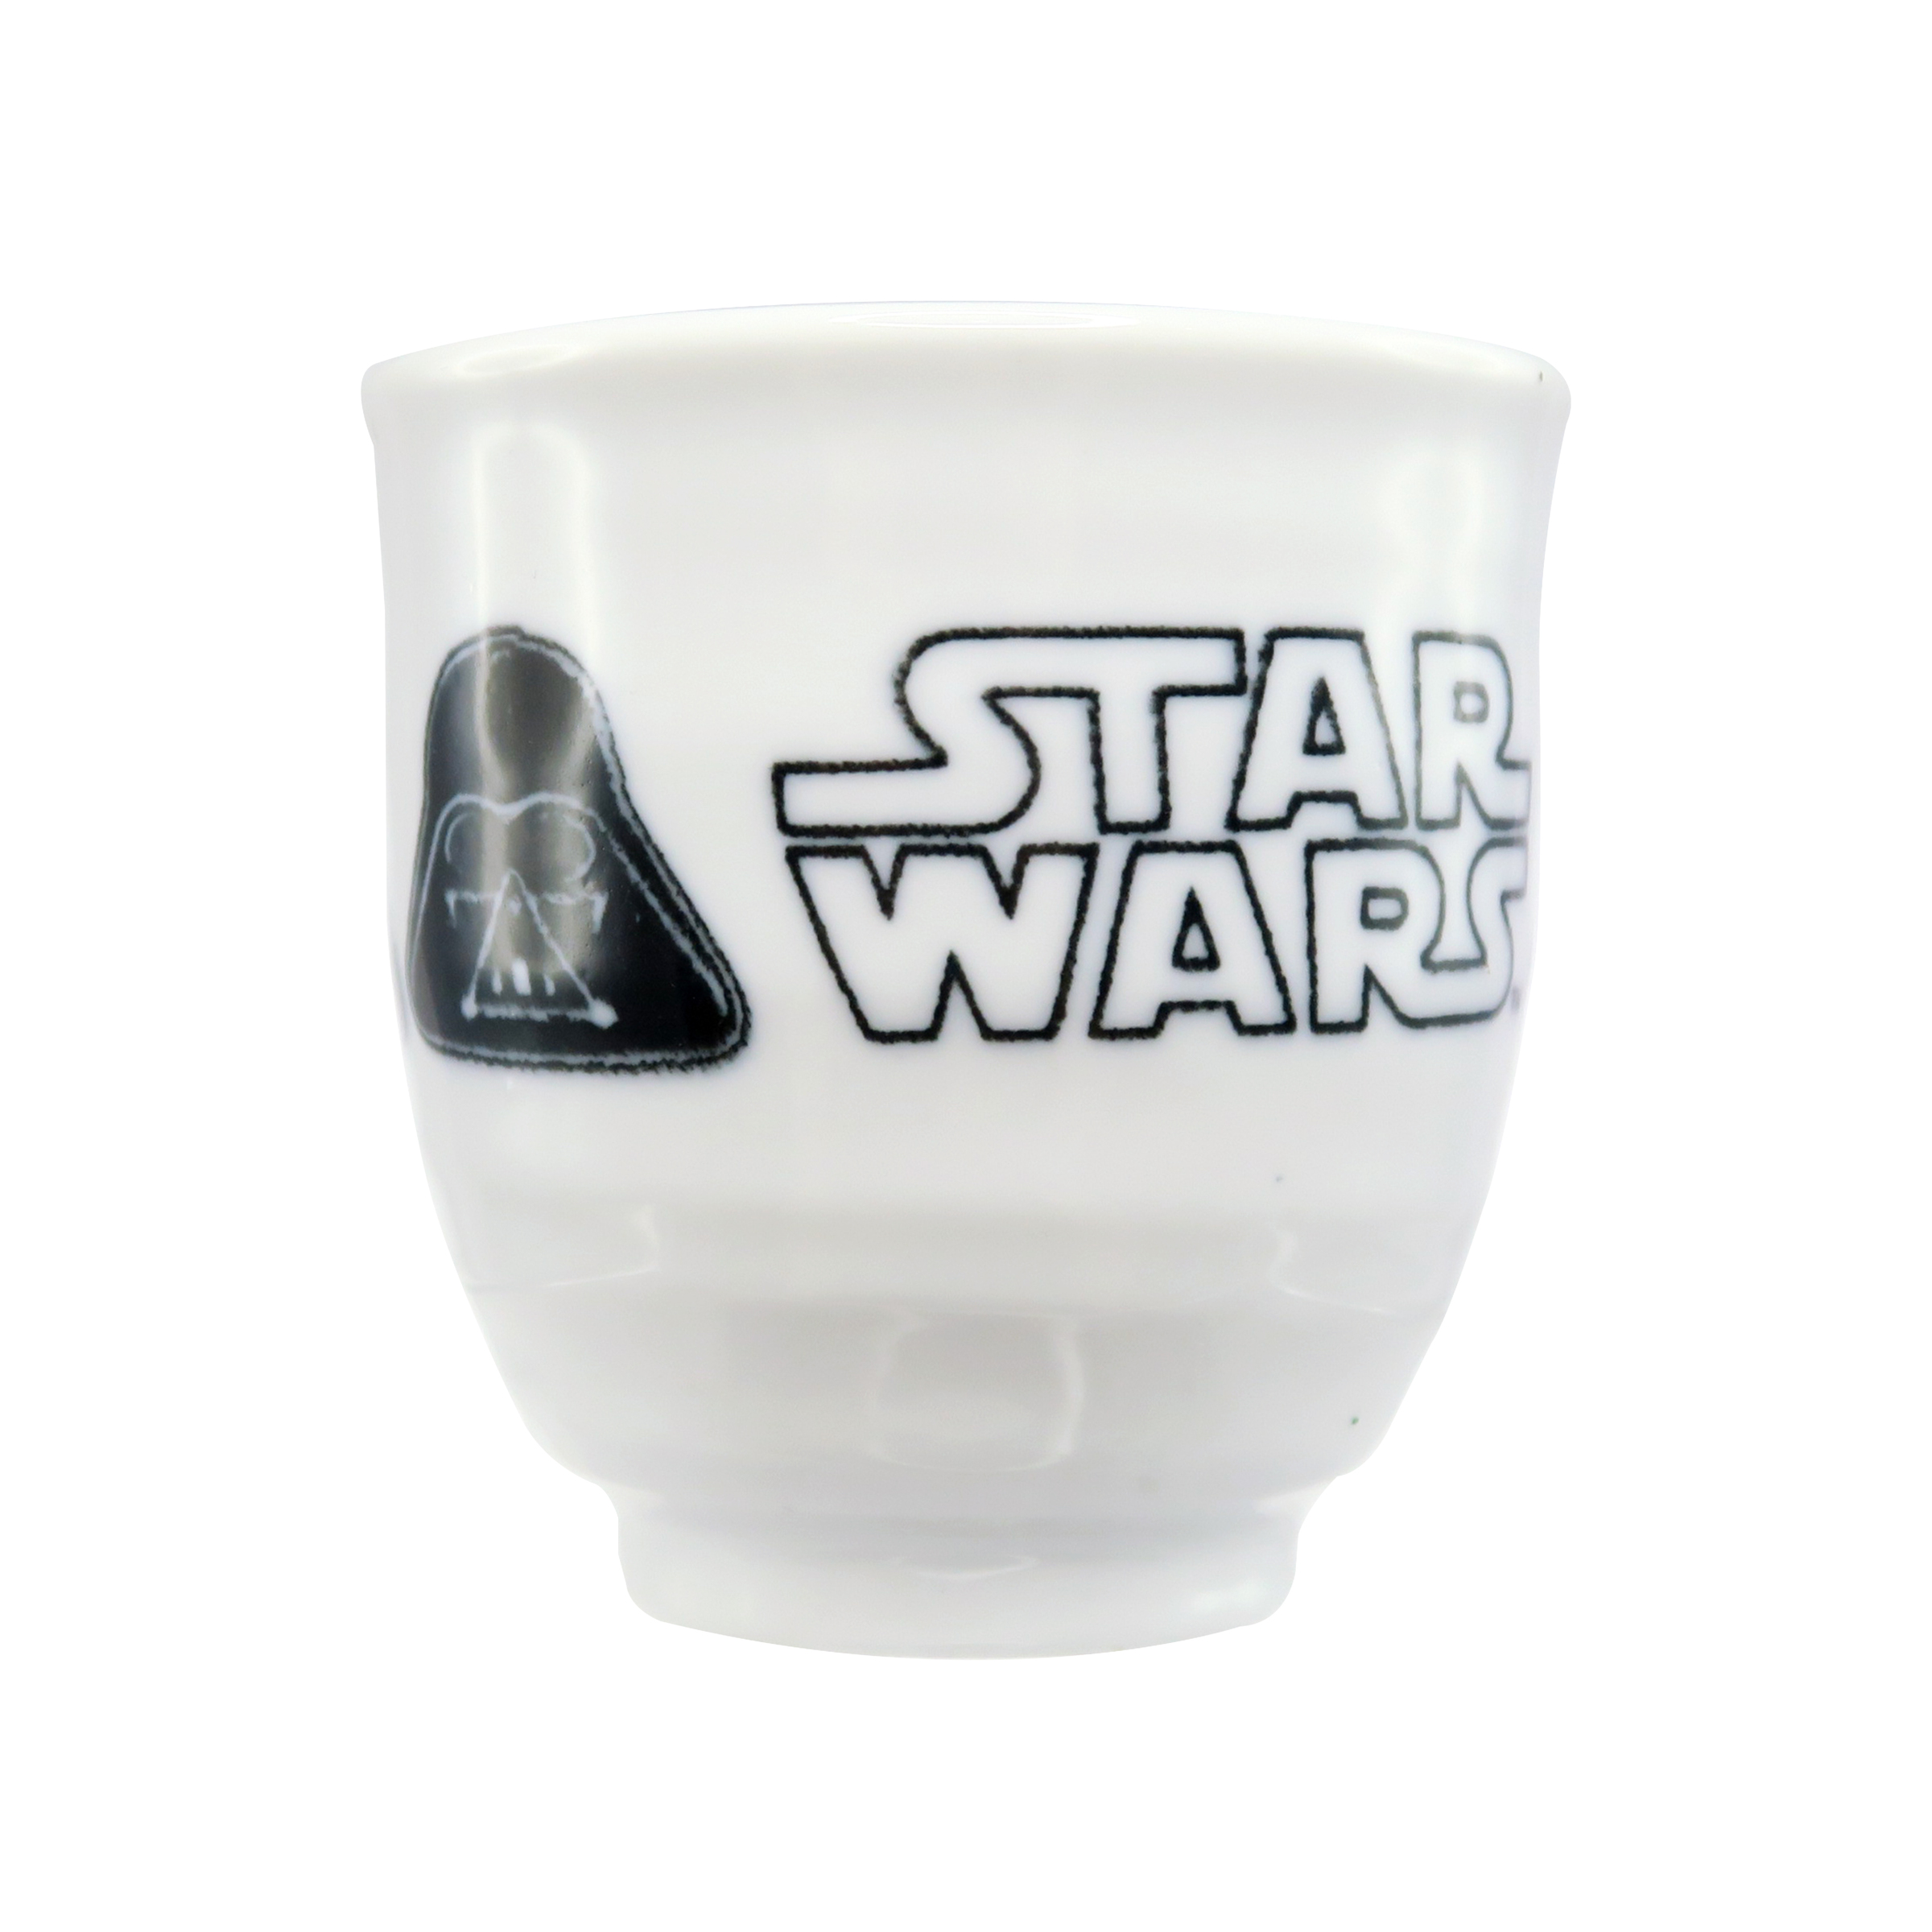 star-wars-cup-gift-box-set-darth-vader-2.jpg